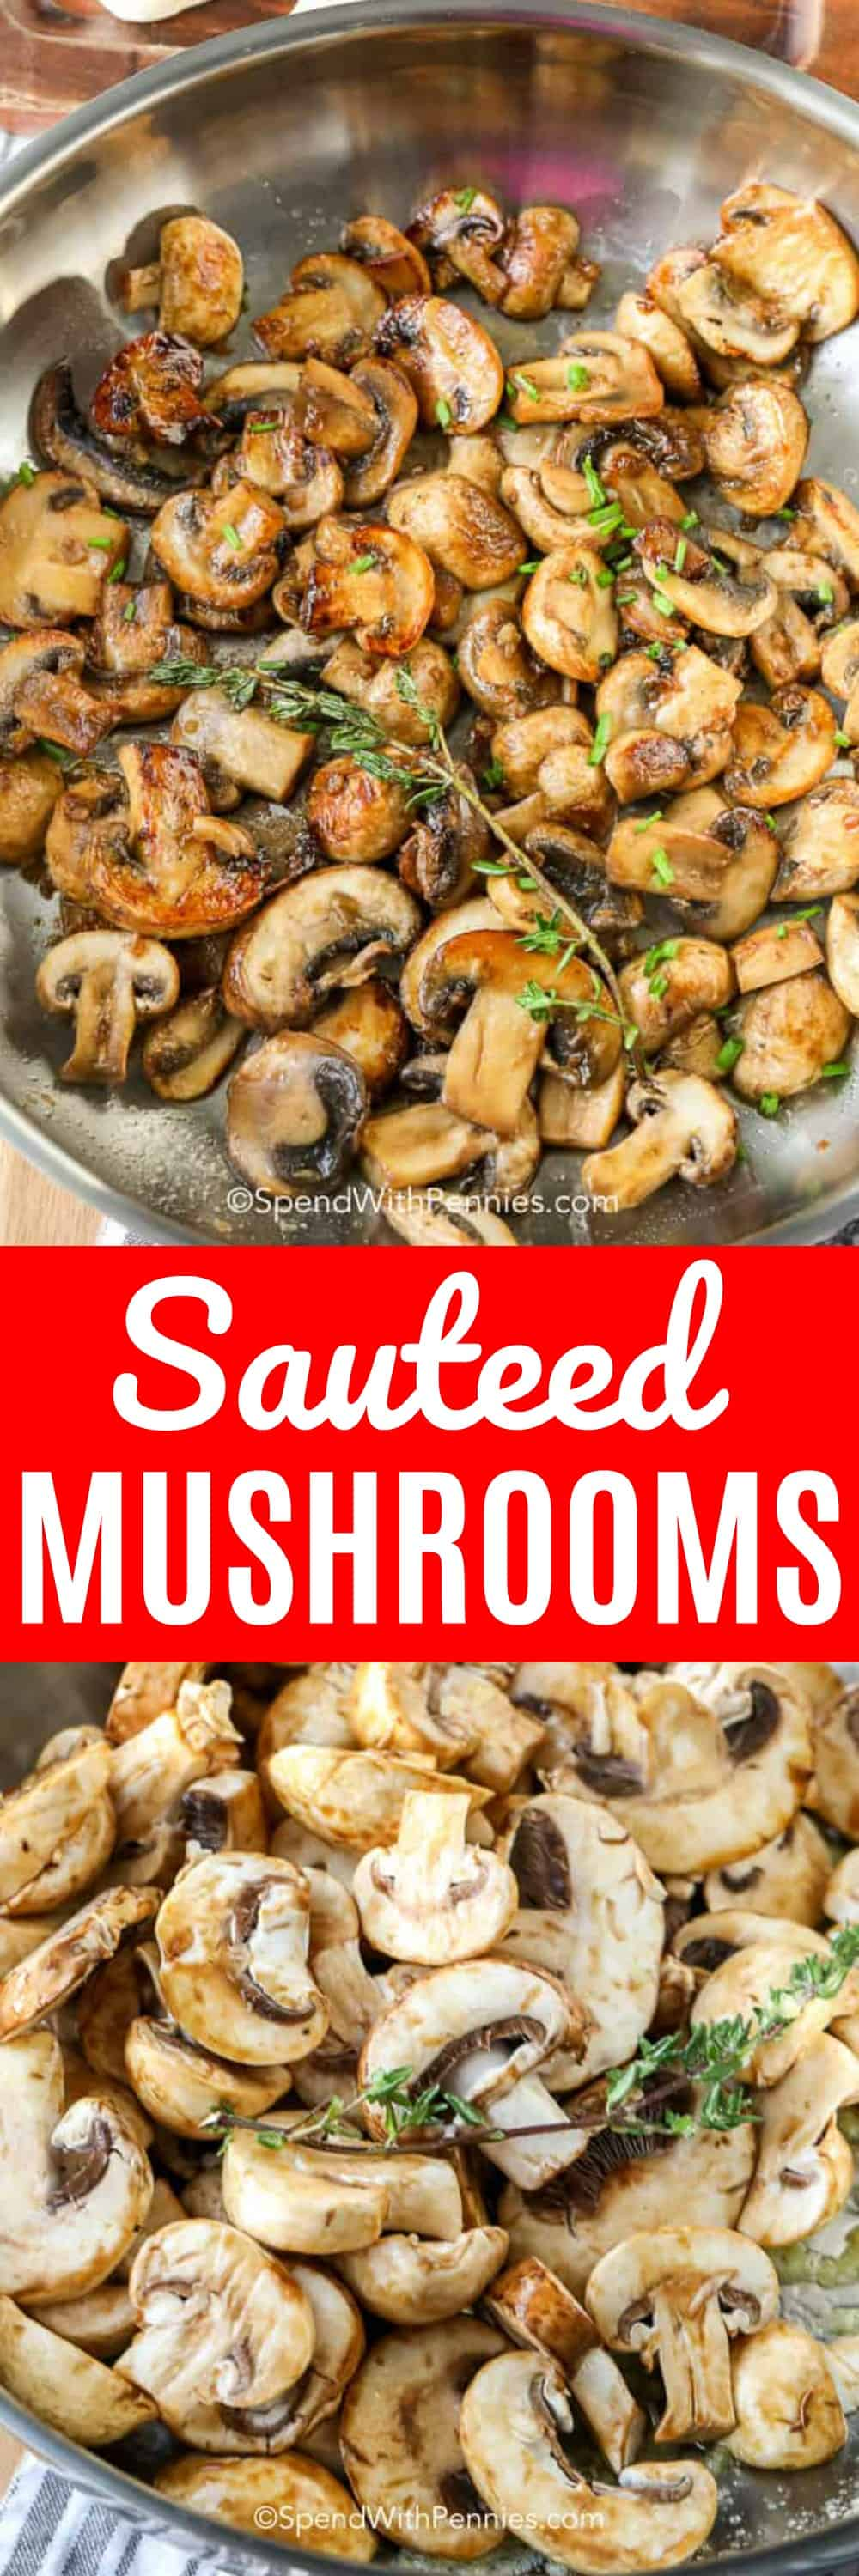 Sauteed Mushrooms add rich deep flavor to steak dinners and are delicious alongside chicken dishes. These fried mushrooms with garlic make the perfect quick side dish and are a great.addition to soups, stews and even cooked rice! #spendwithpennies #sidedish #mushrooms #friedmushrooms #sauteedmushrooms #easymushroomrecipe